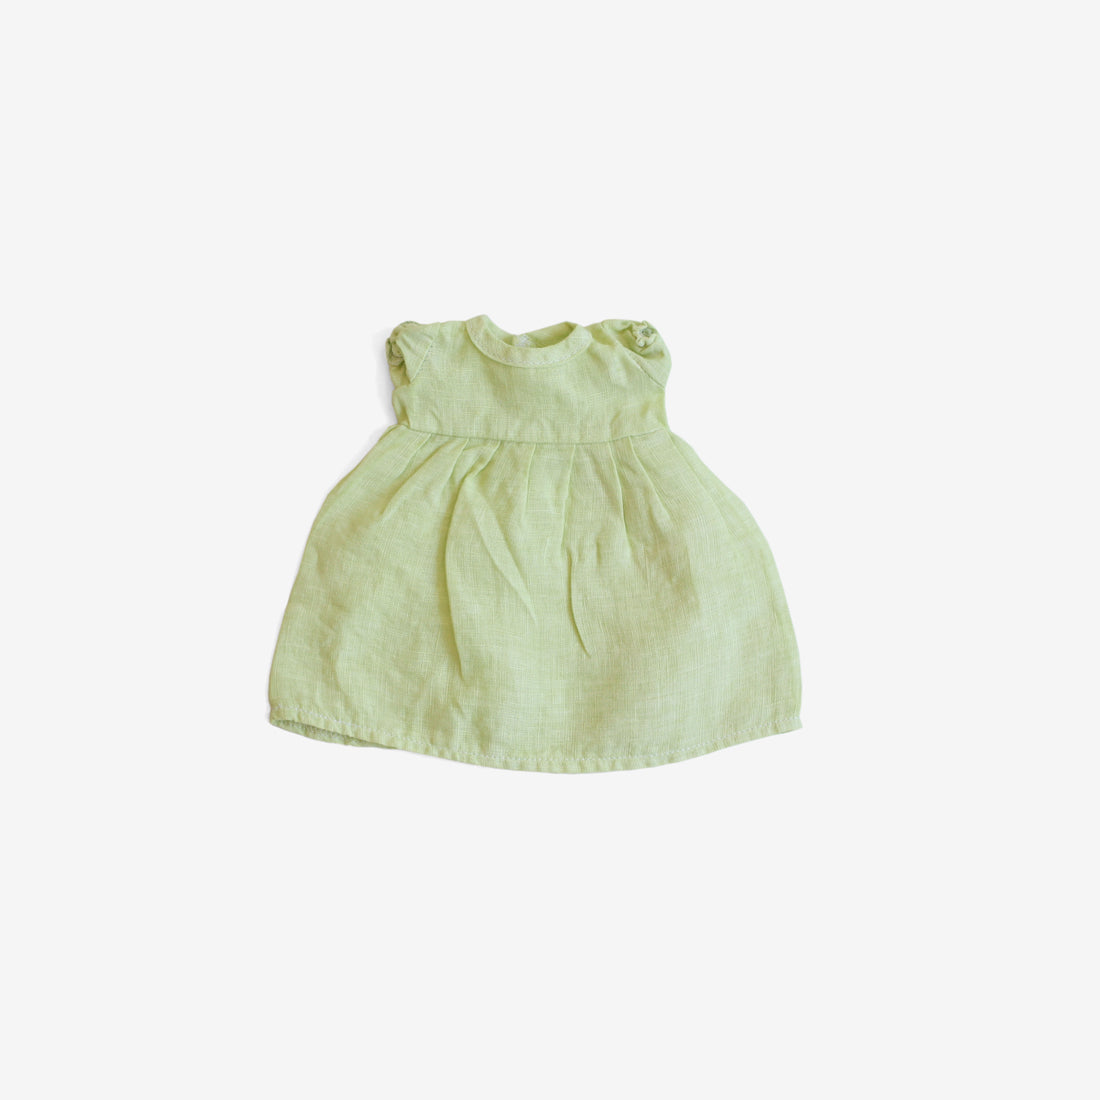 Linen Dolly Dress - Honeydew